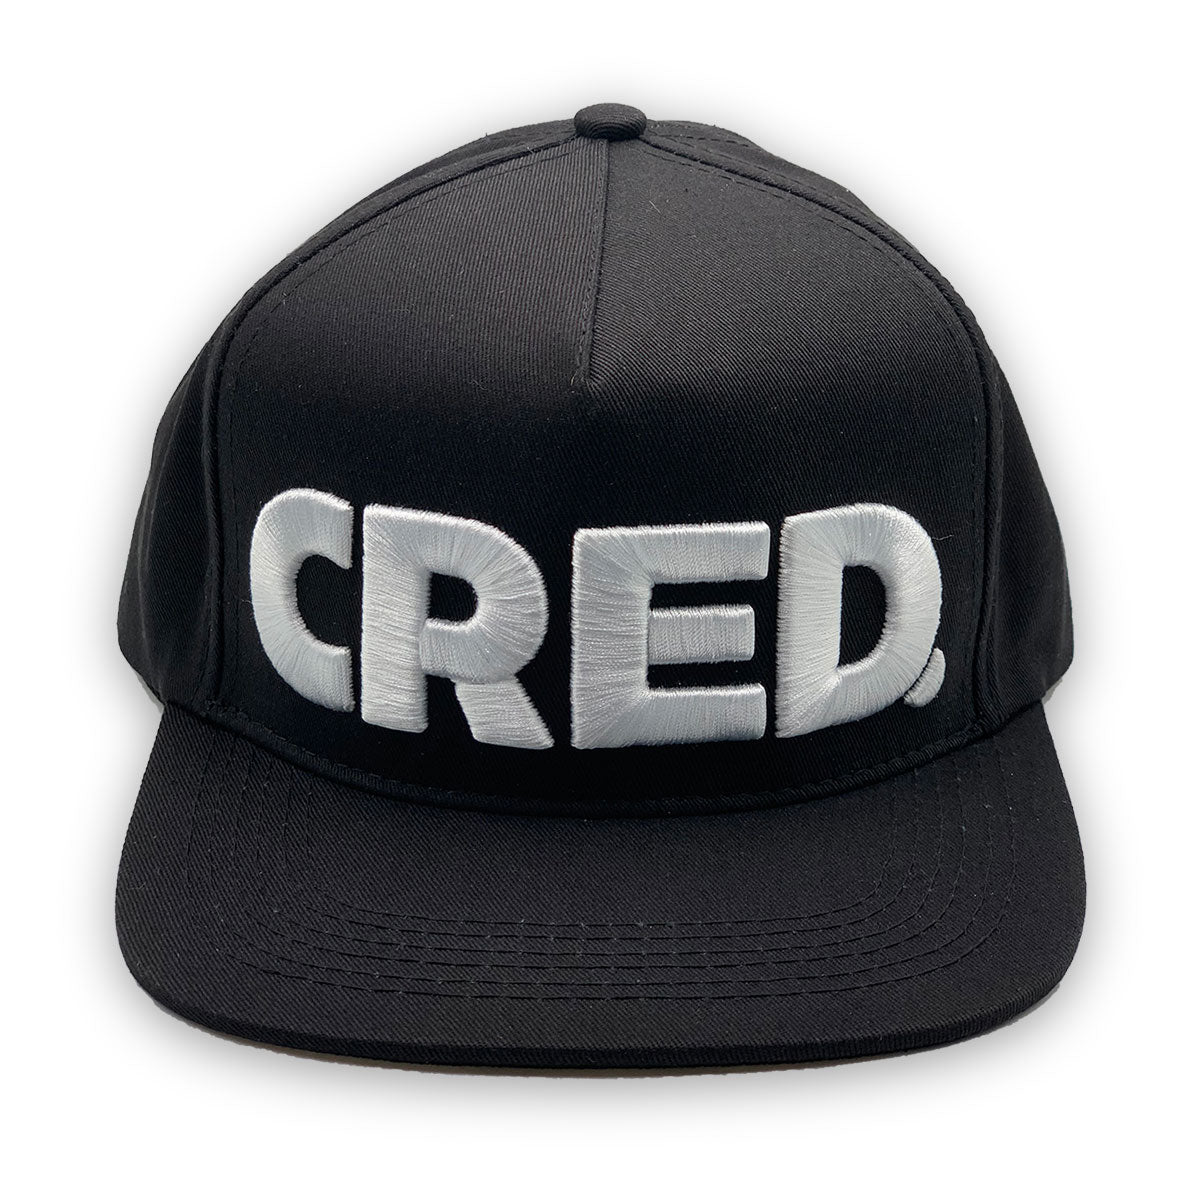 CRED SNAP BACK